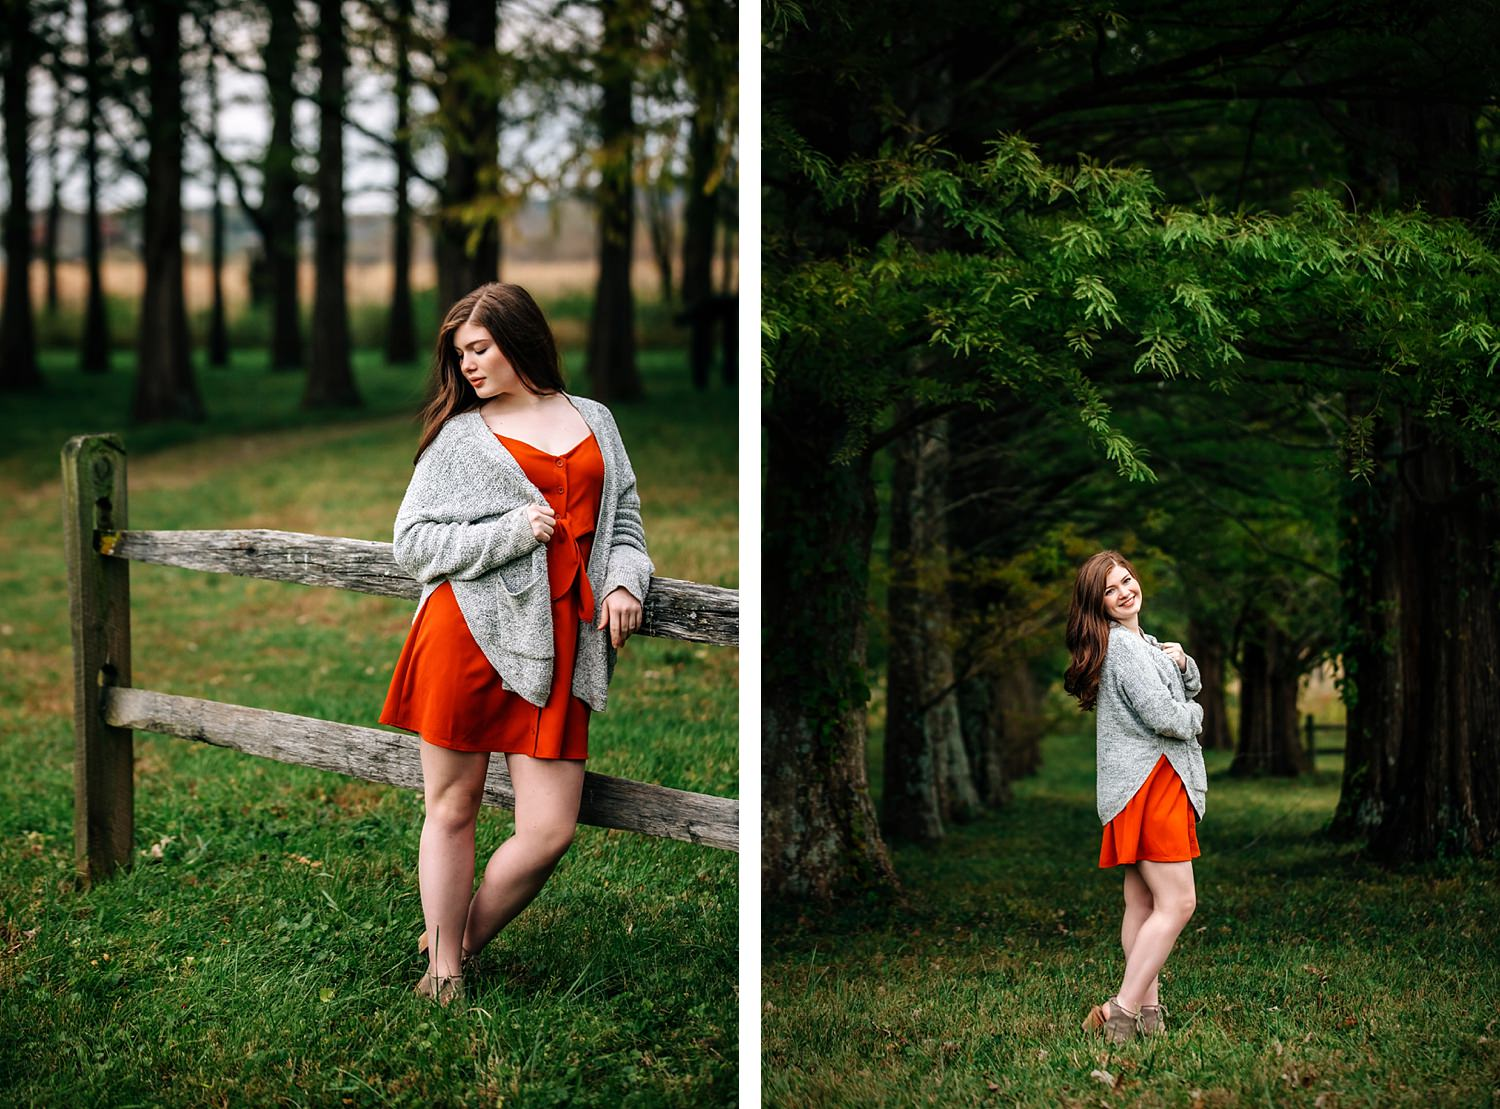 senior portrait of red head girl in woods leaning against fence in granville ohio